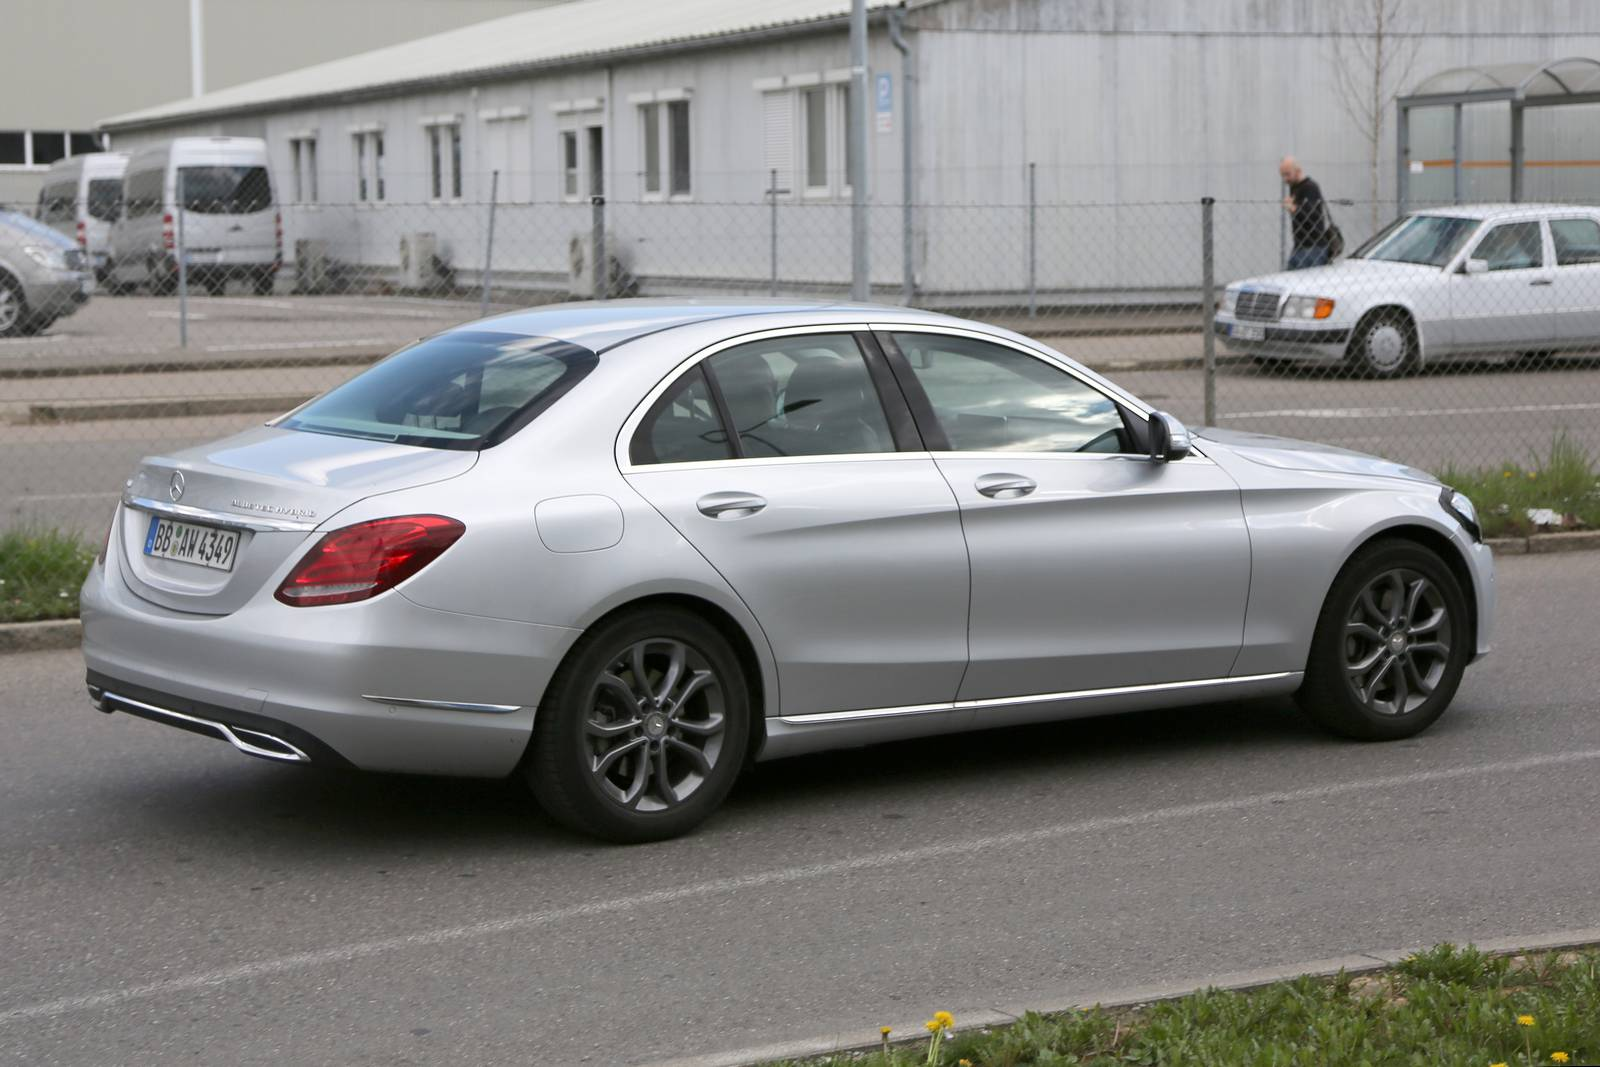 2018 Mercedes Benz C Class Facelift Spy Shots on maybach cabriolet